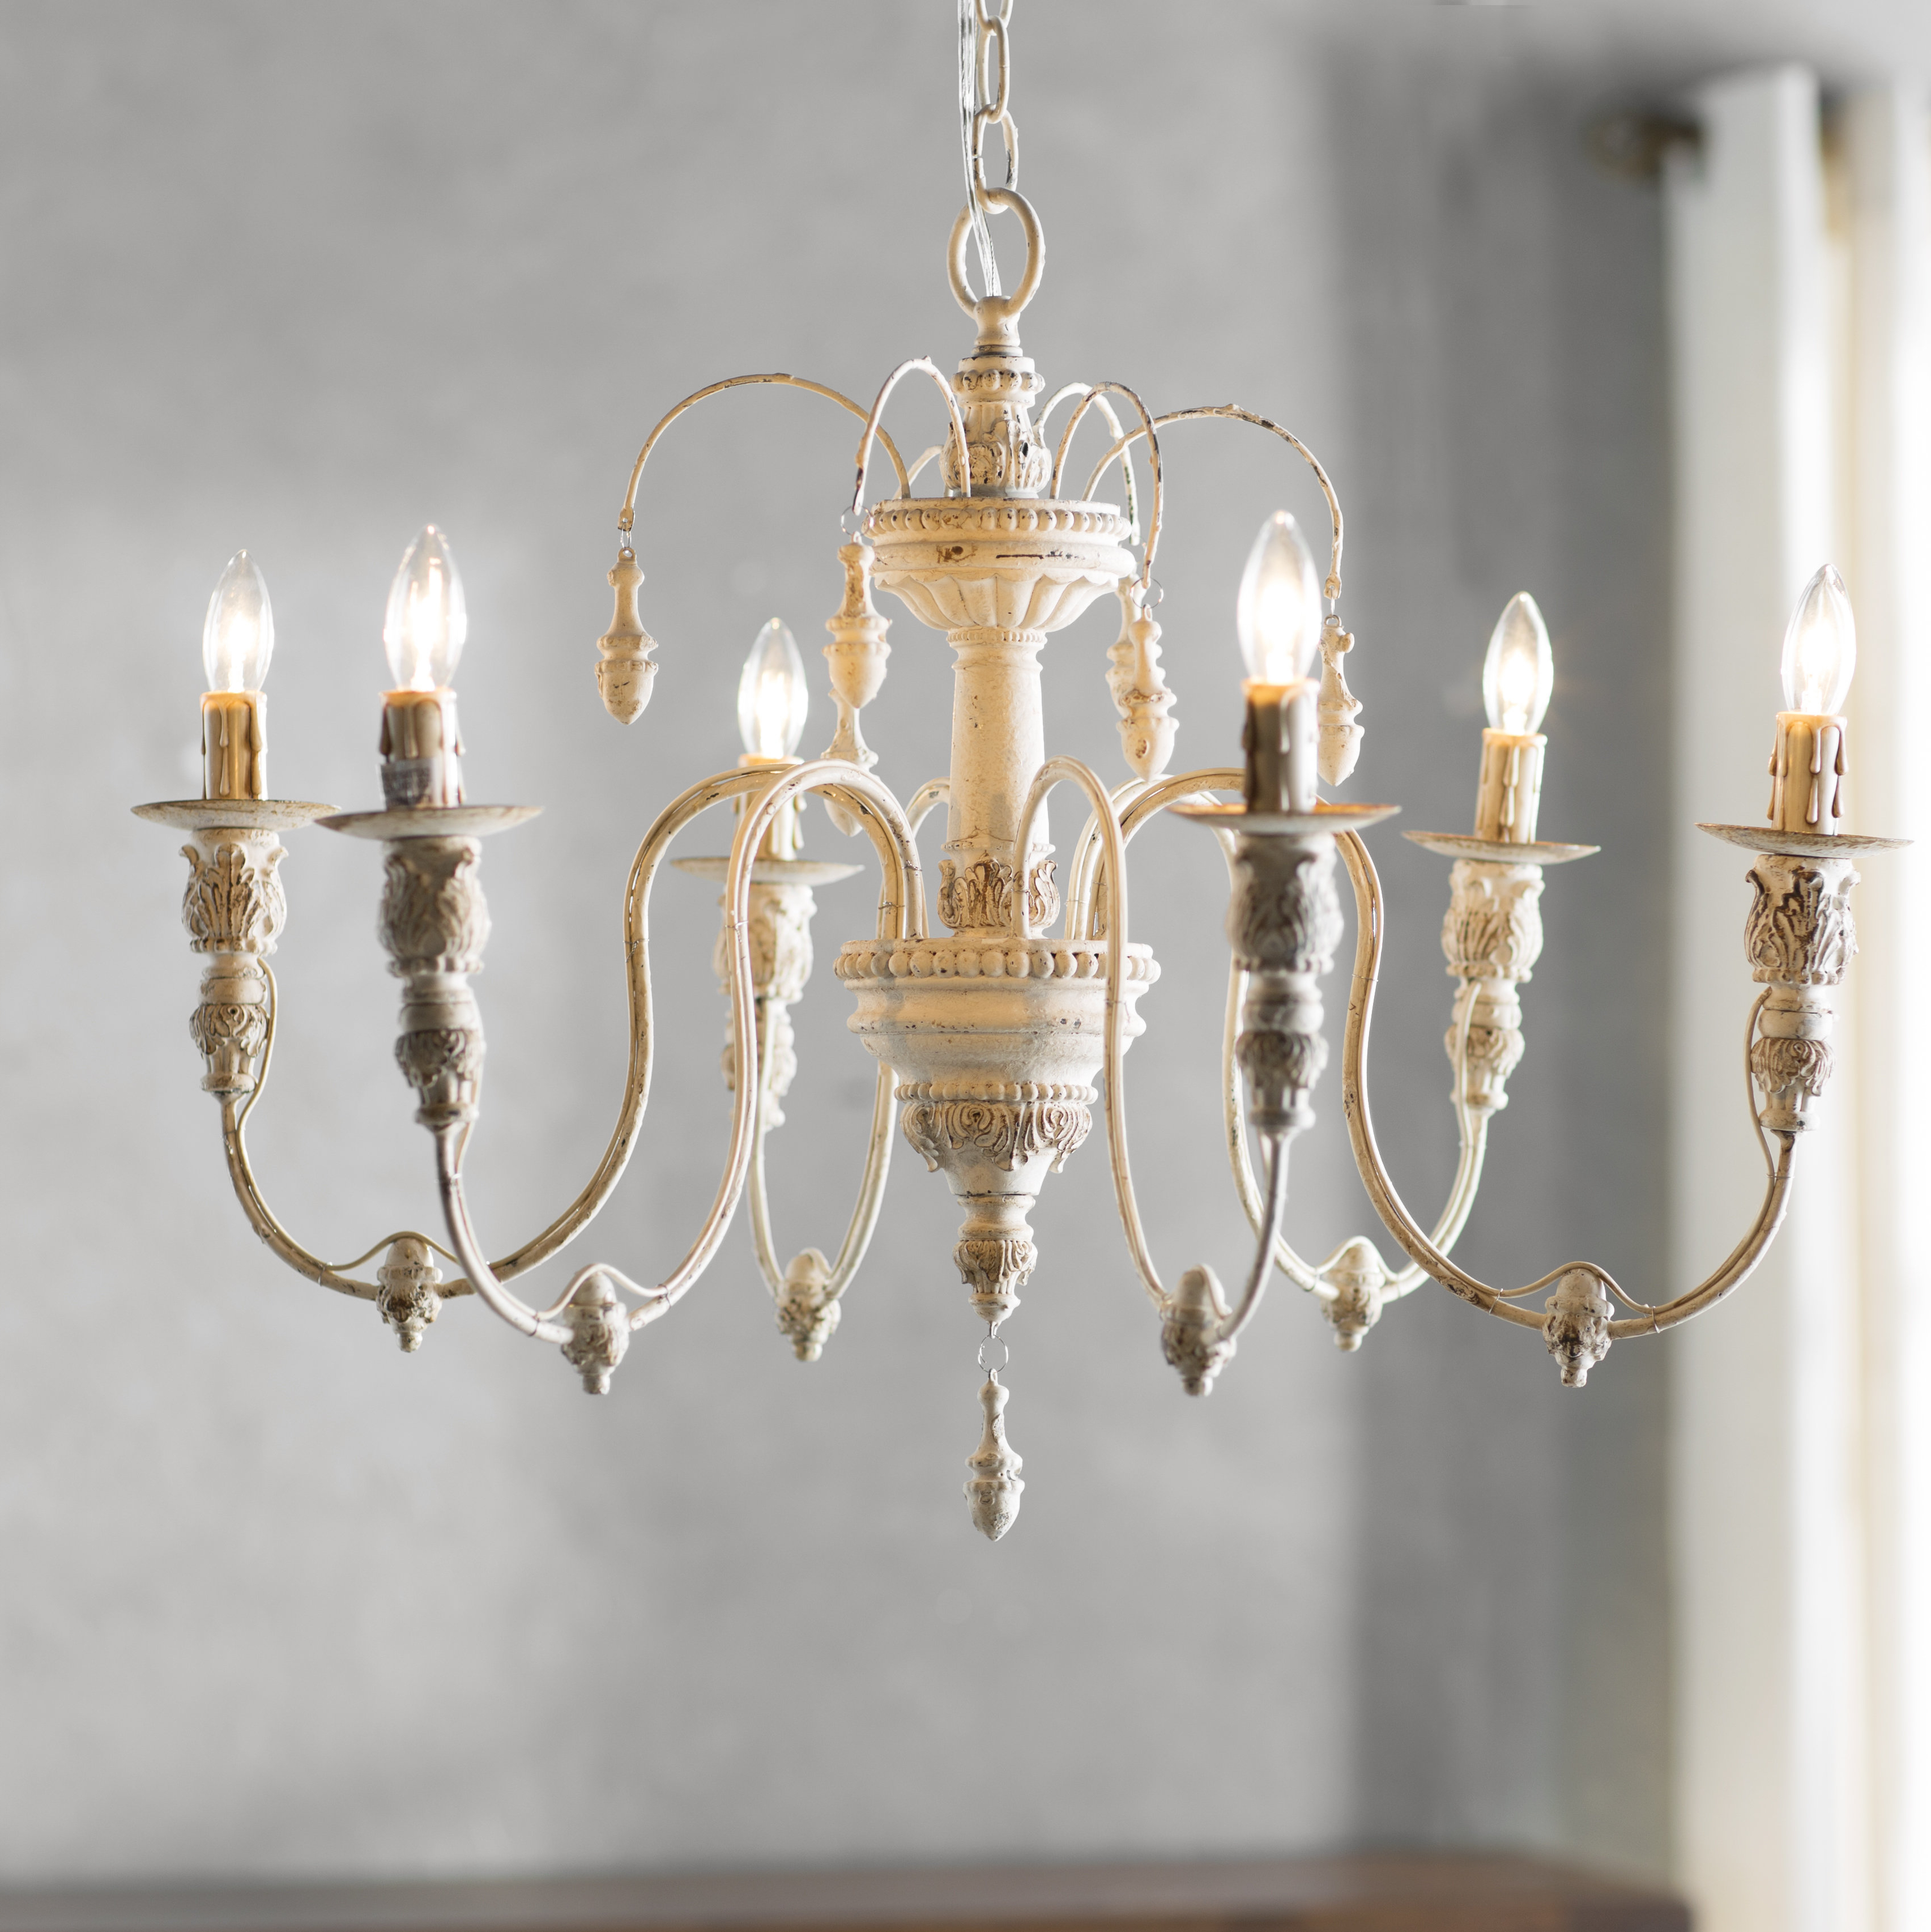 Trendy Candle Style White & Cream Chandeliers You'll Love In 2019 Within Corneau 5 Light Chandeliers (View 22 of 25)